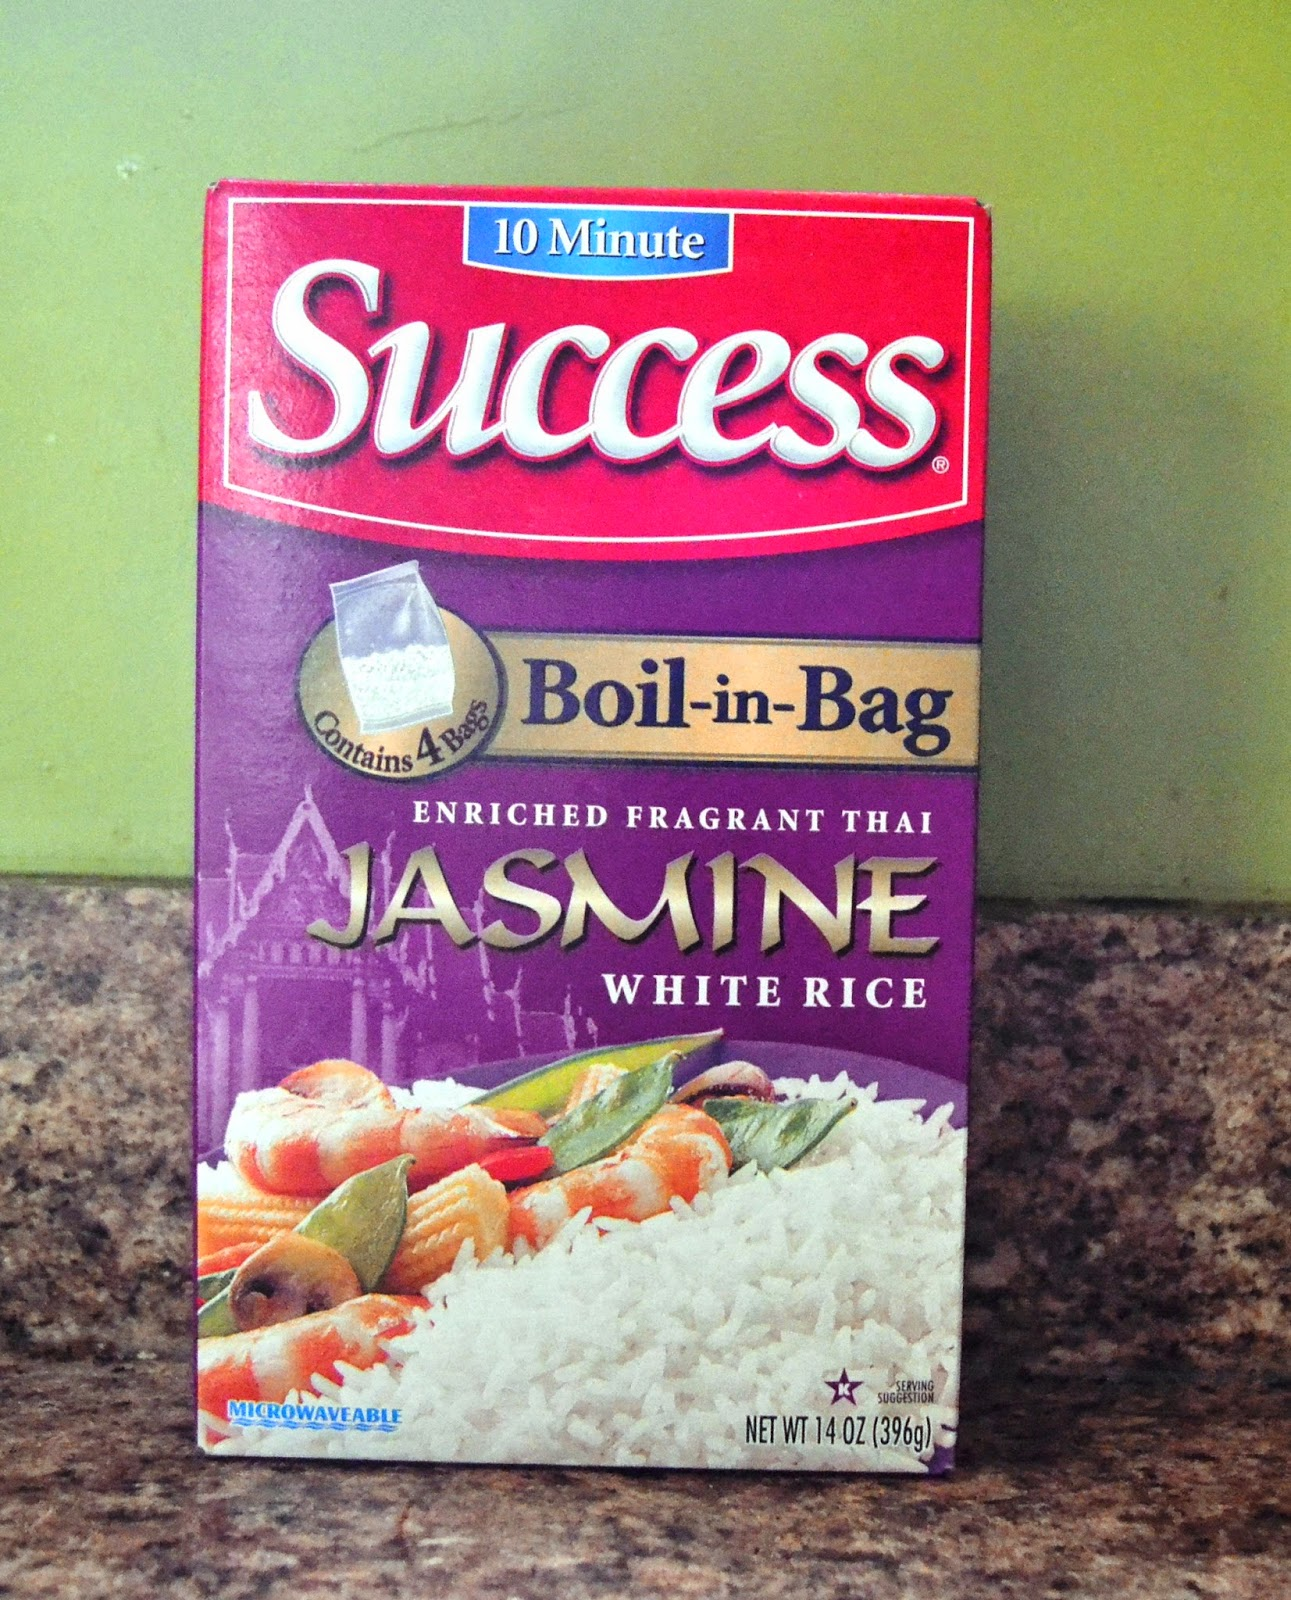 Success Boil-in-Bag Jasmine Rice